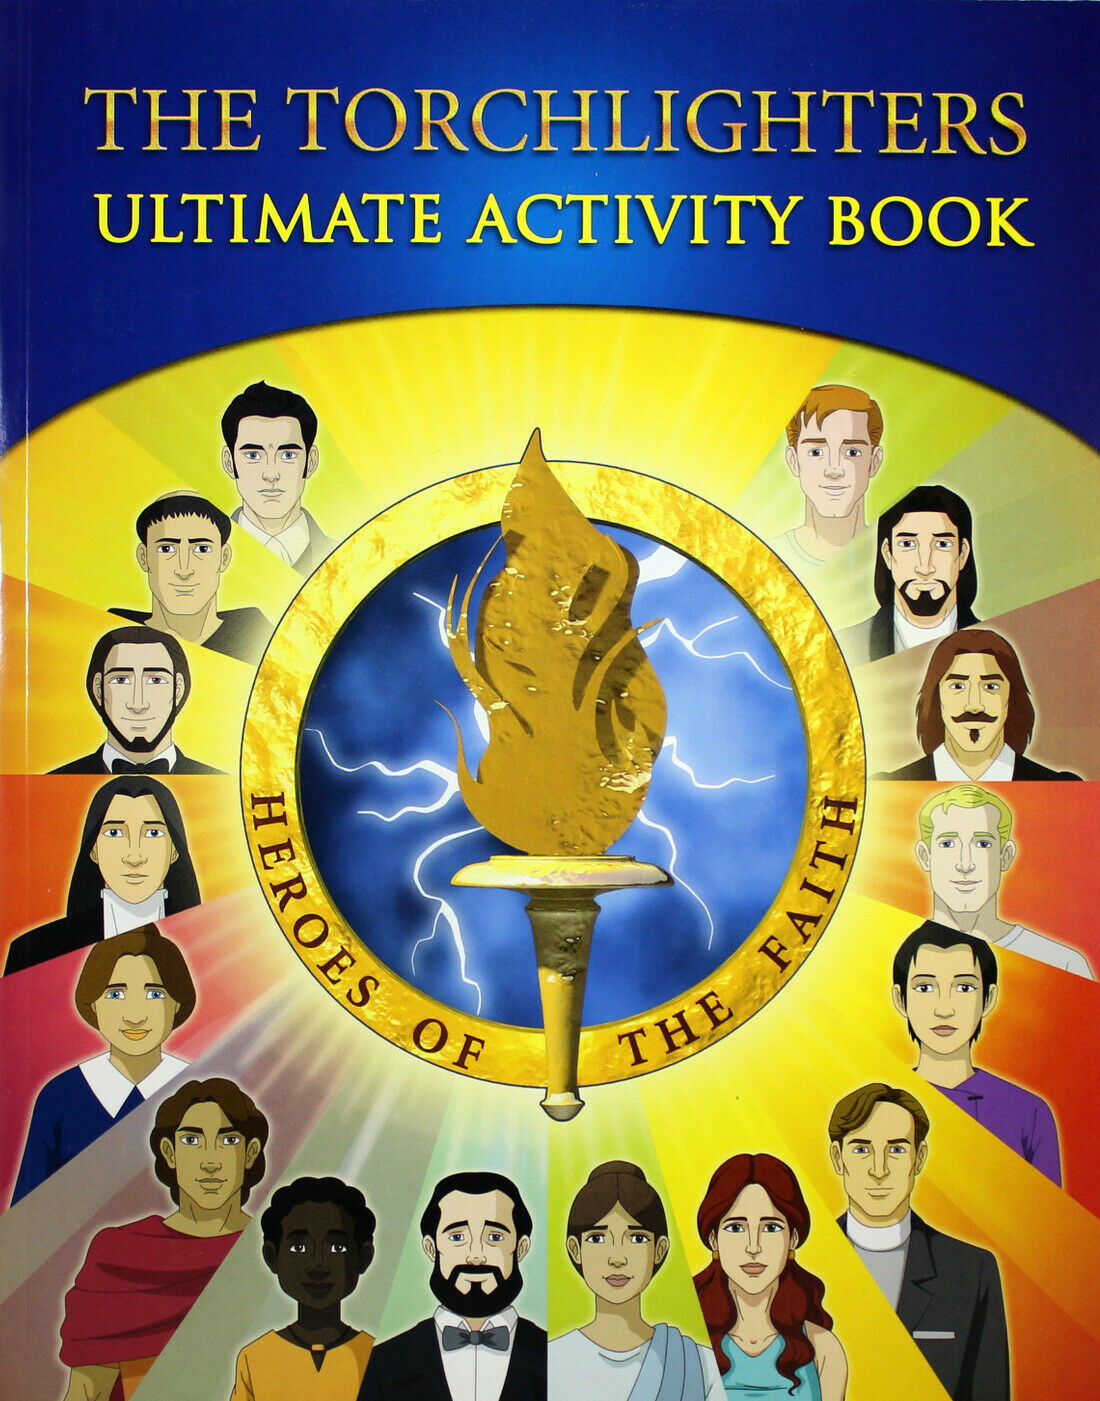 Primary image for The Torchlighters Ultimate Activity Book NEW - 16 Heroes of Faith Honored